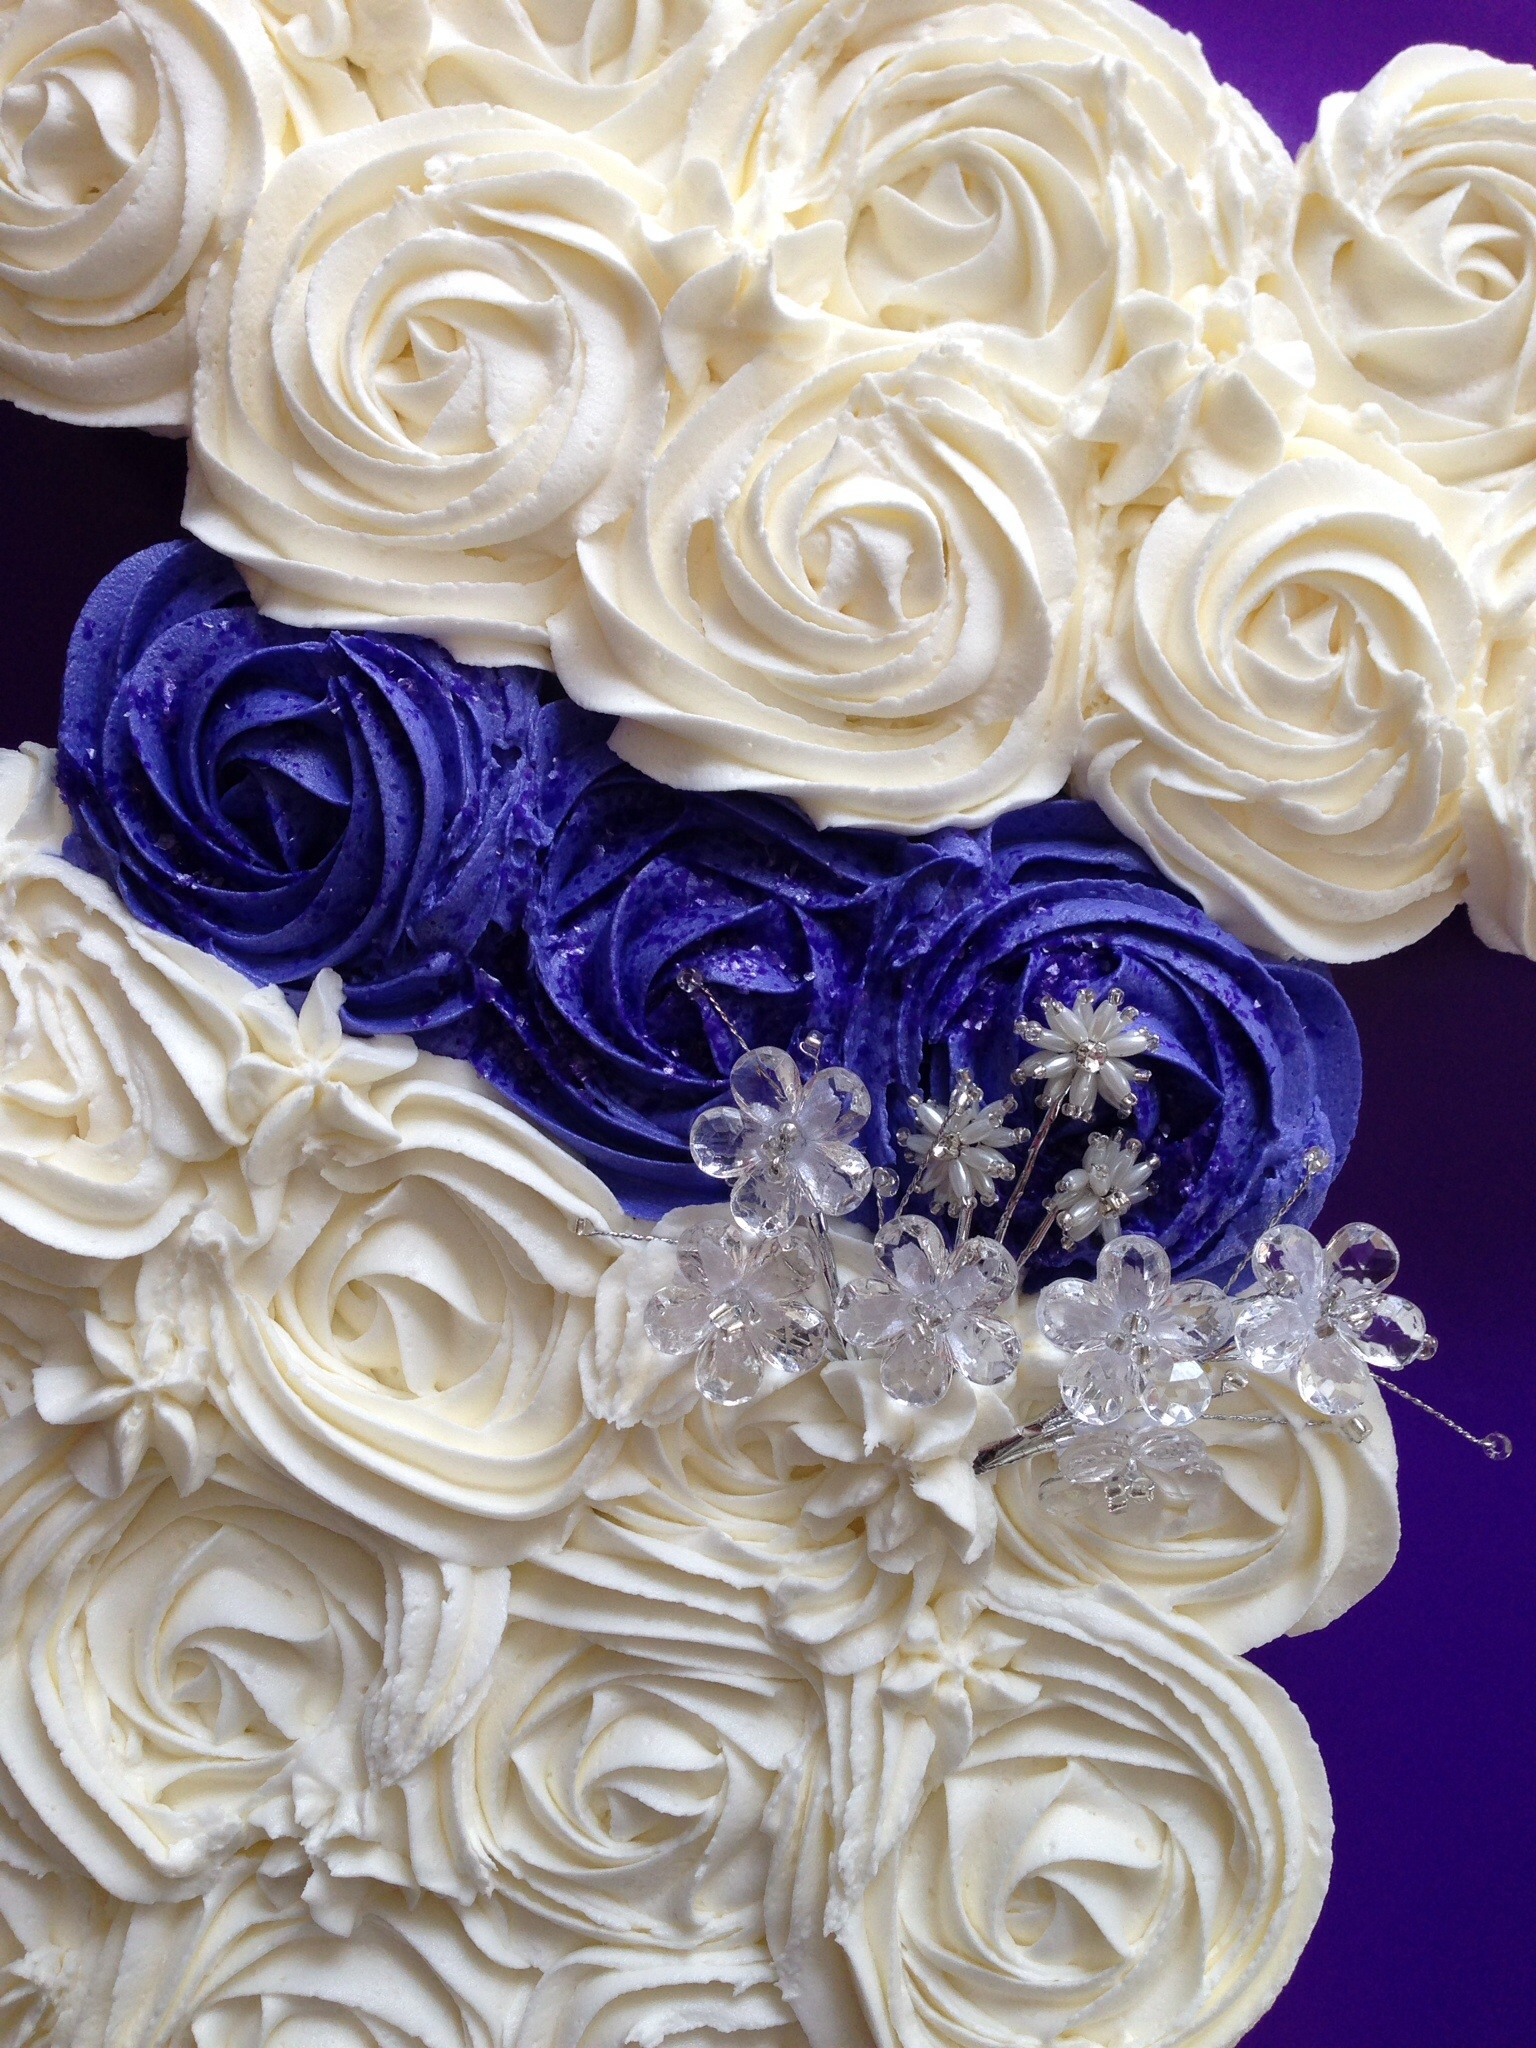 Bridal Shower Cake Made Out Of Cupcakes In The Shape Of A ...